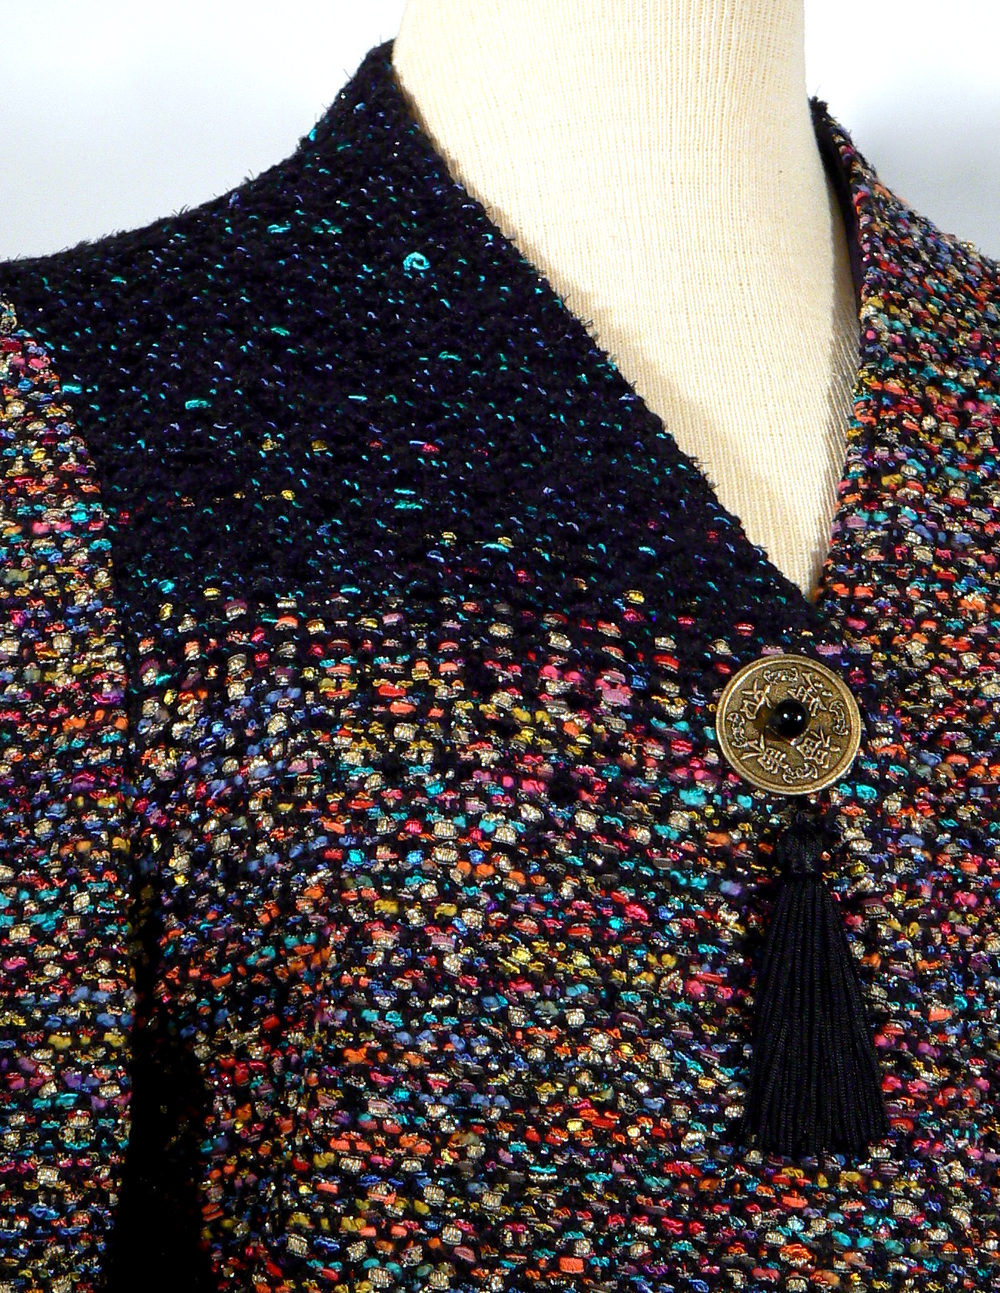 Handwoven Jacket Kathleen Weir-West 7-001.JPG